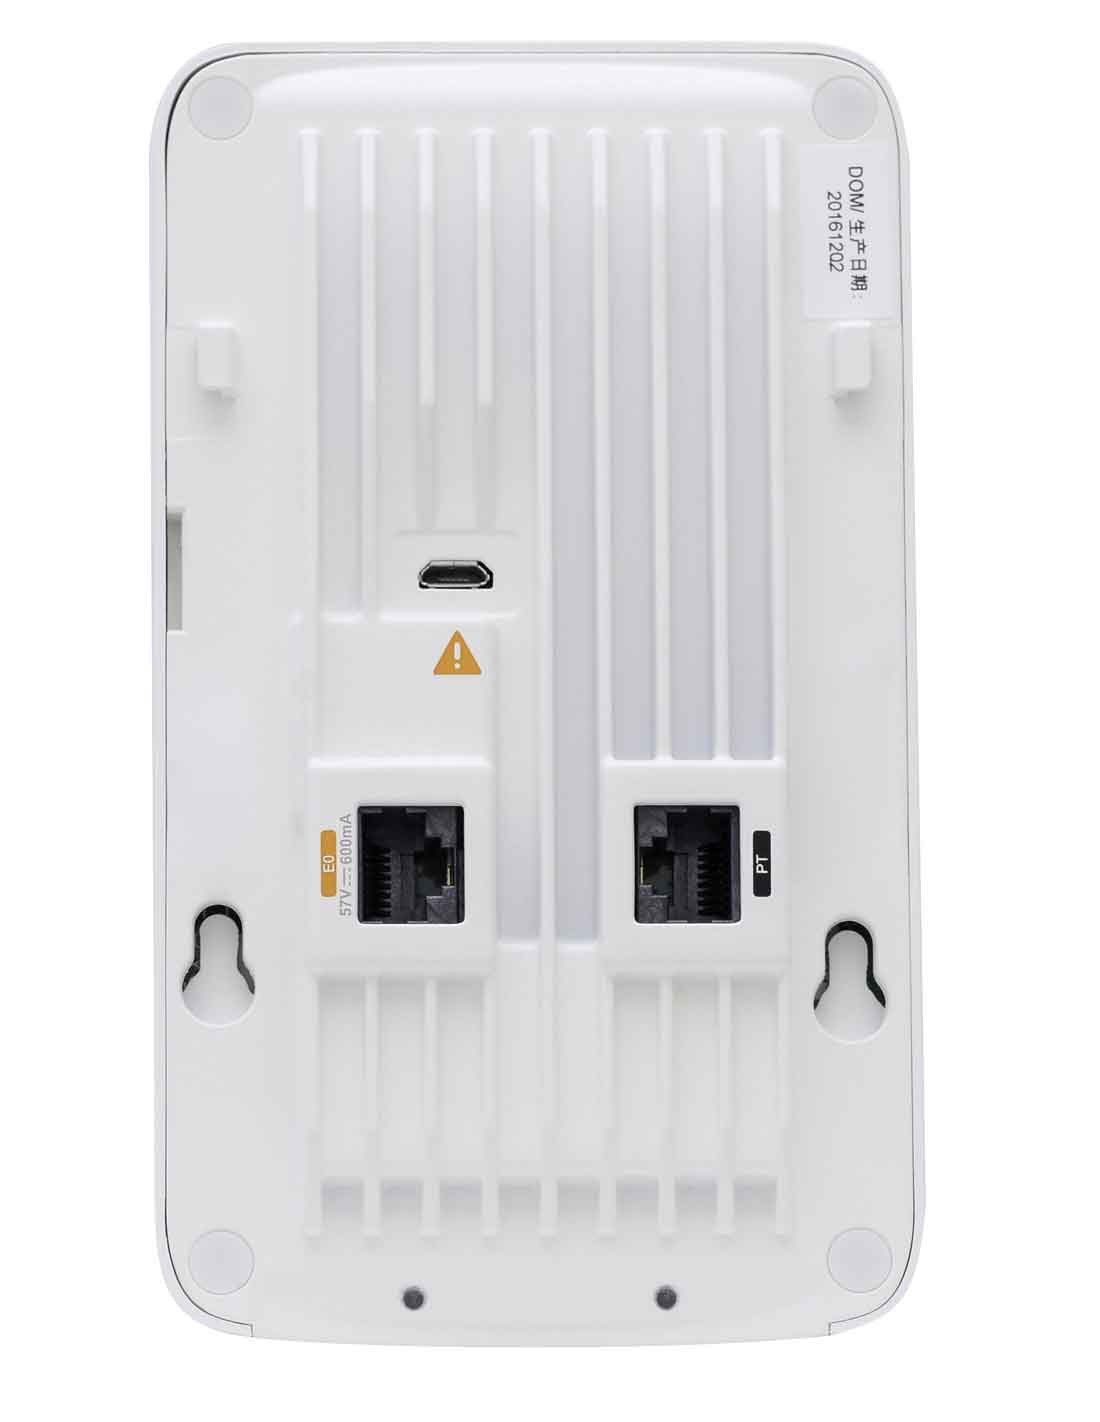 Aruba AP-303H Access Point (JY678A) images